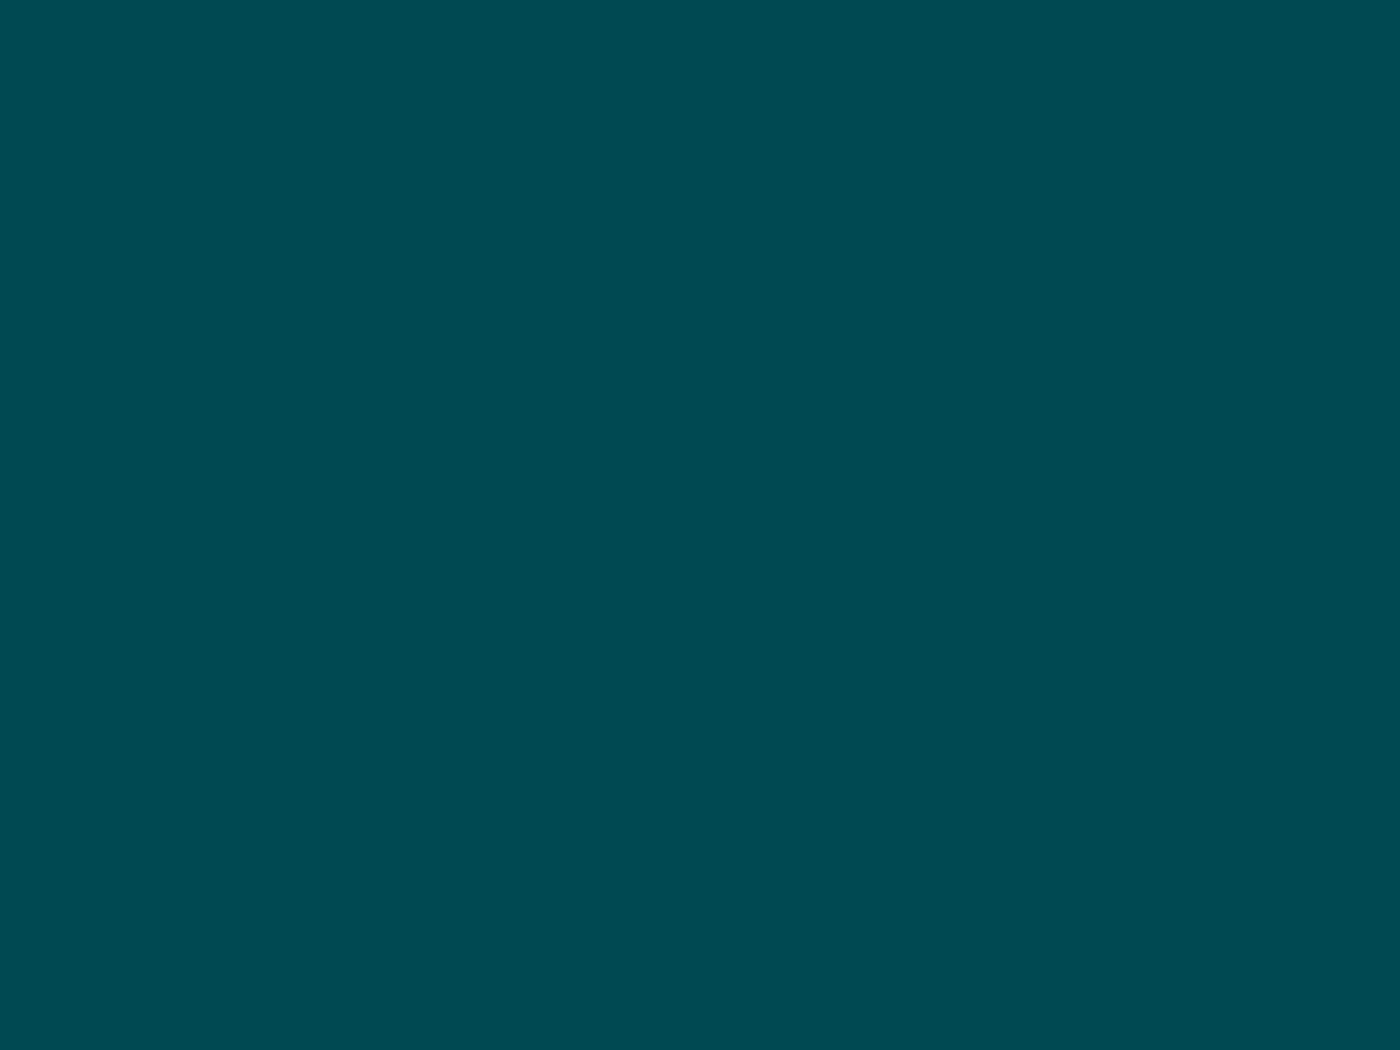 1400x1050 Midnight Green Solid Color Background